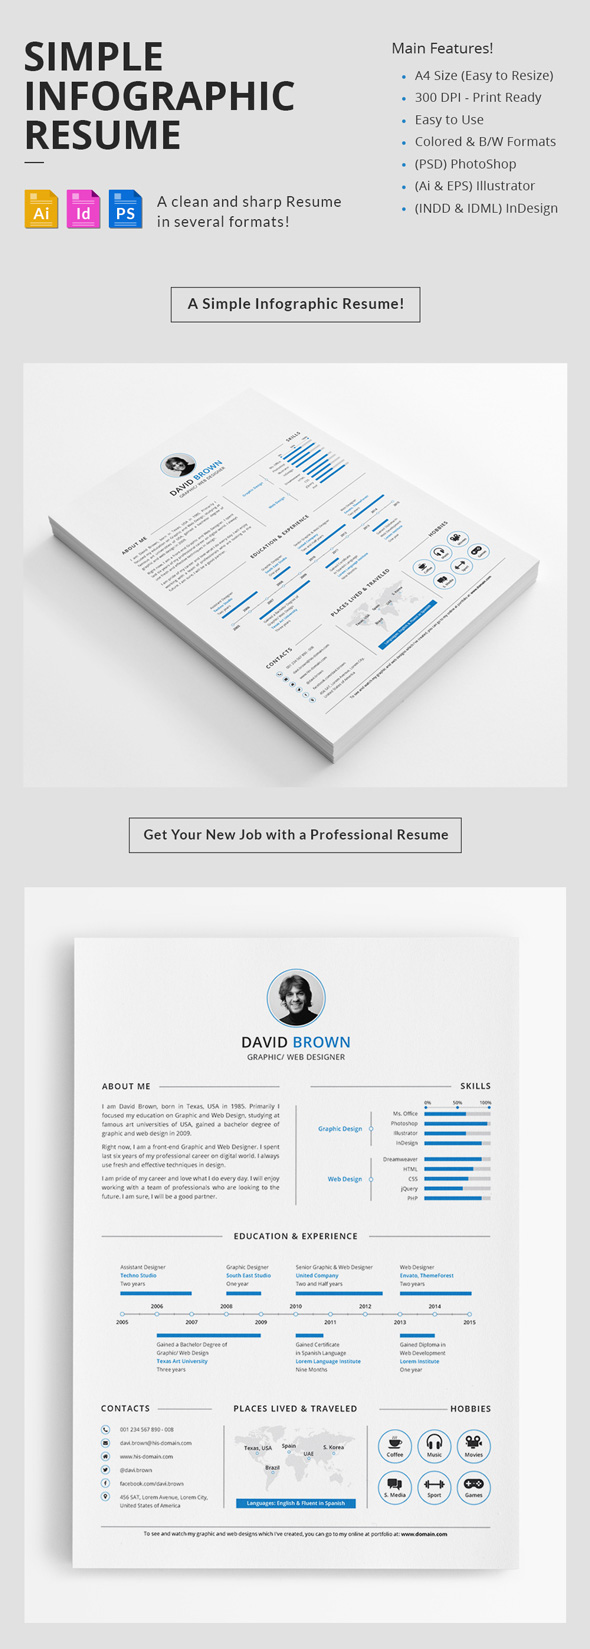 simple infographic resume design - Resume Graphic Design